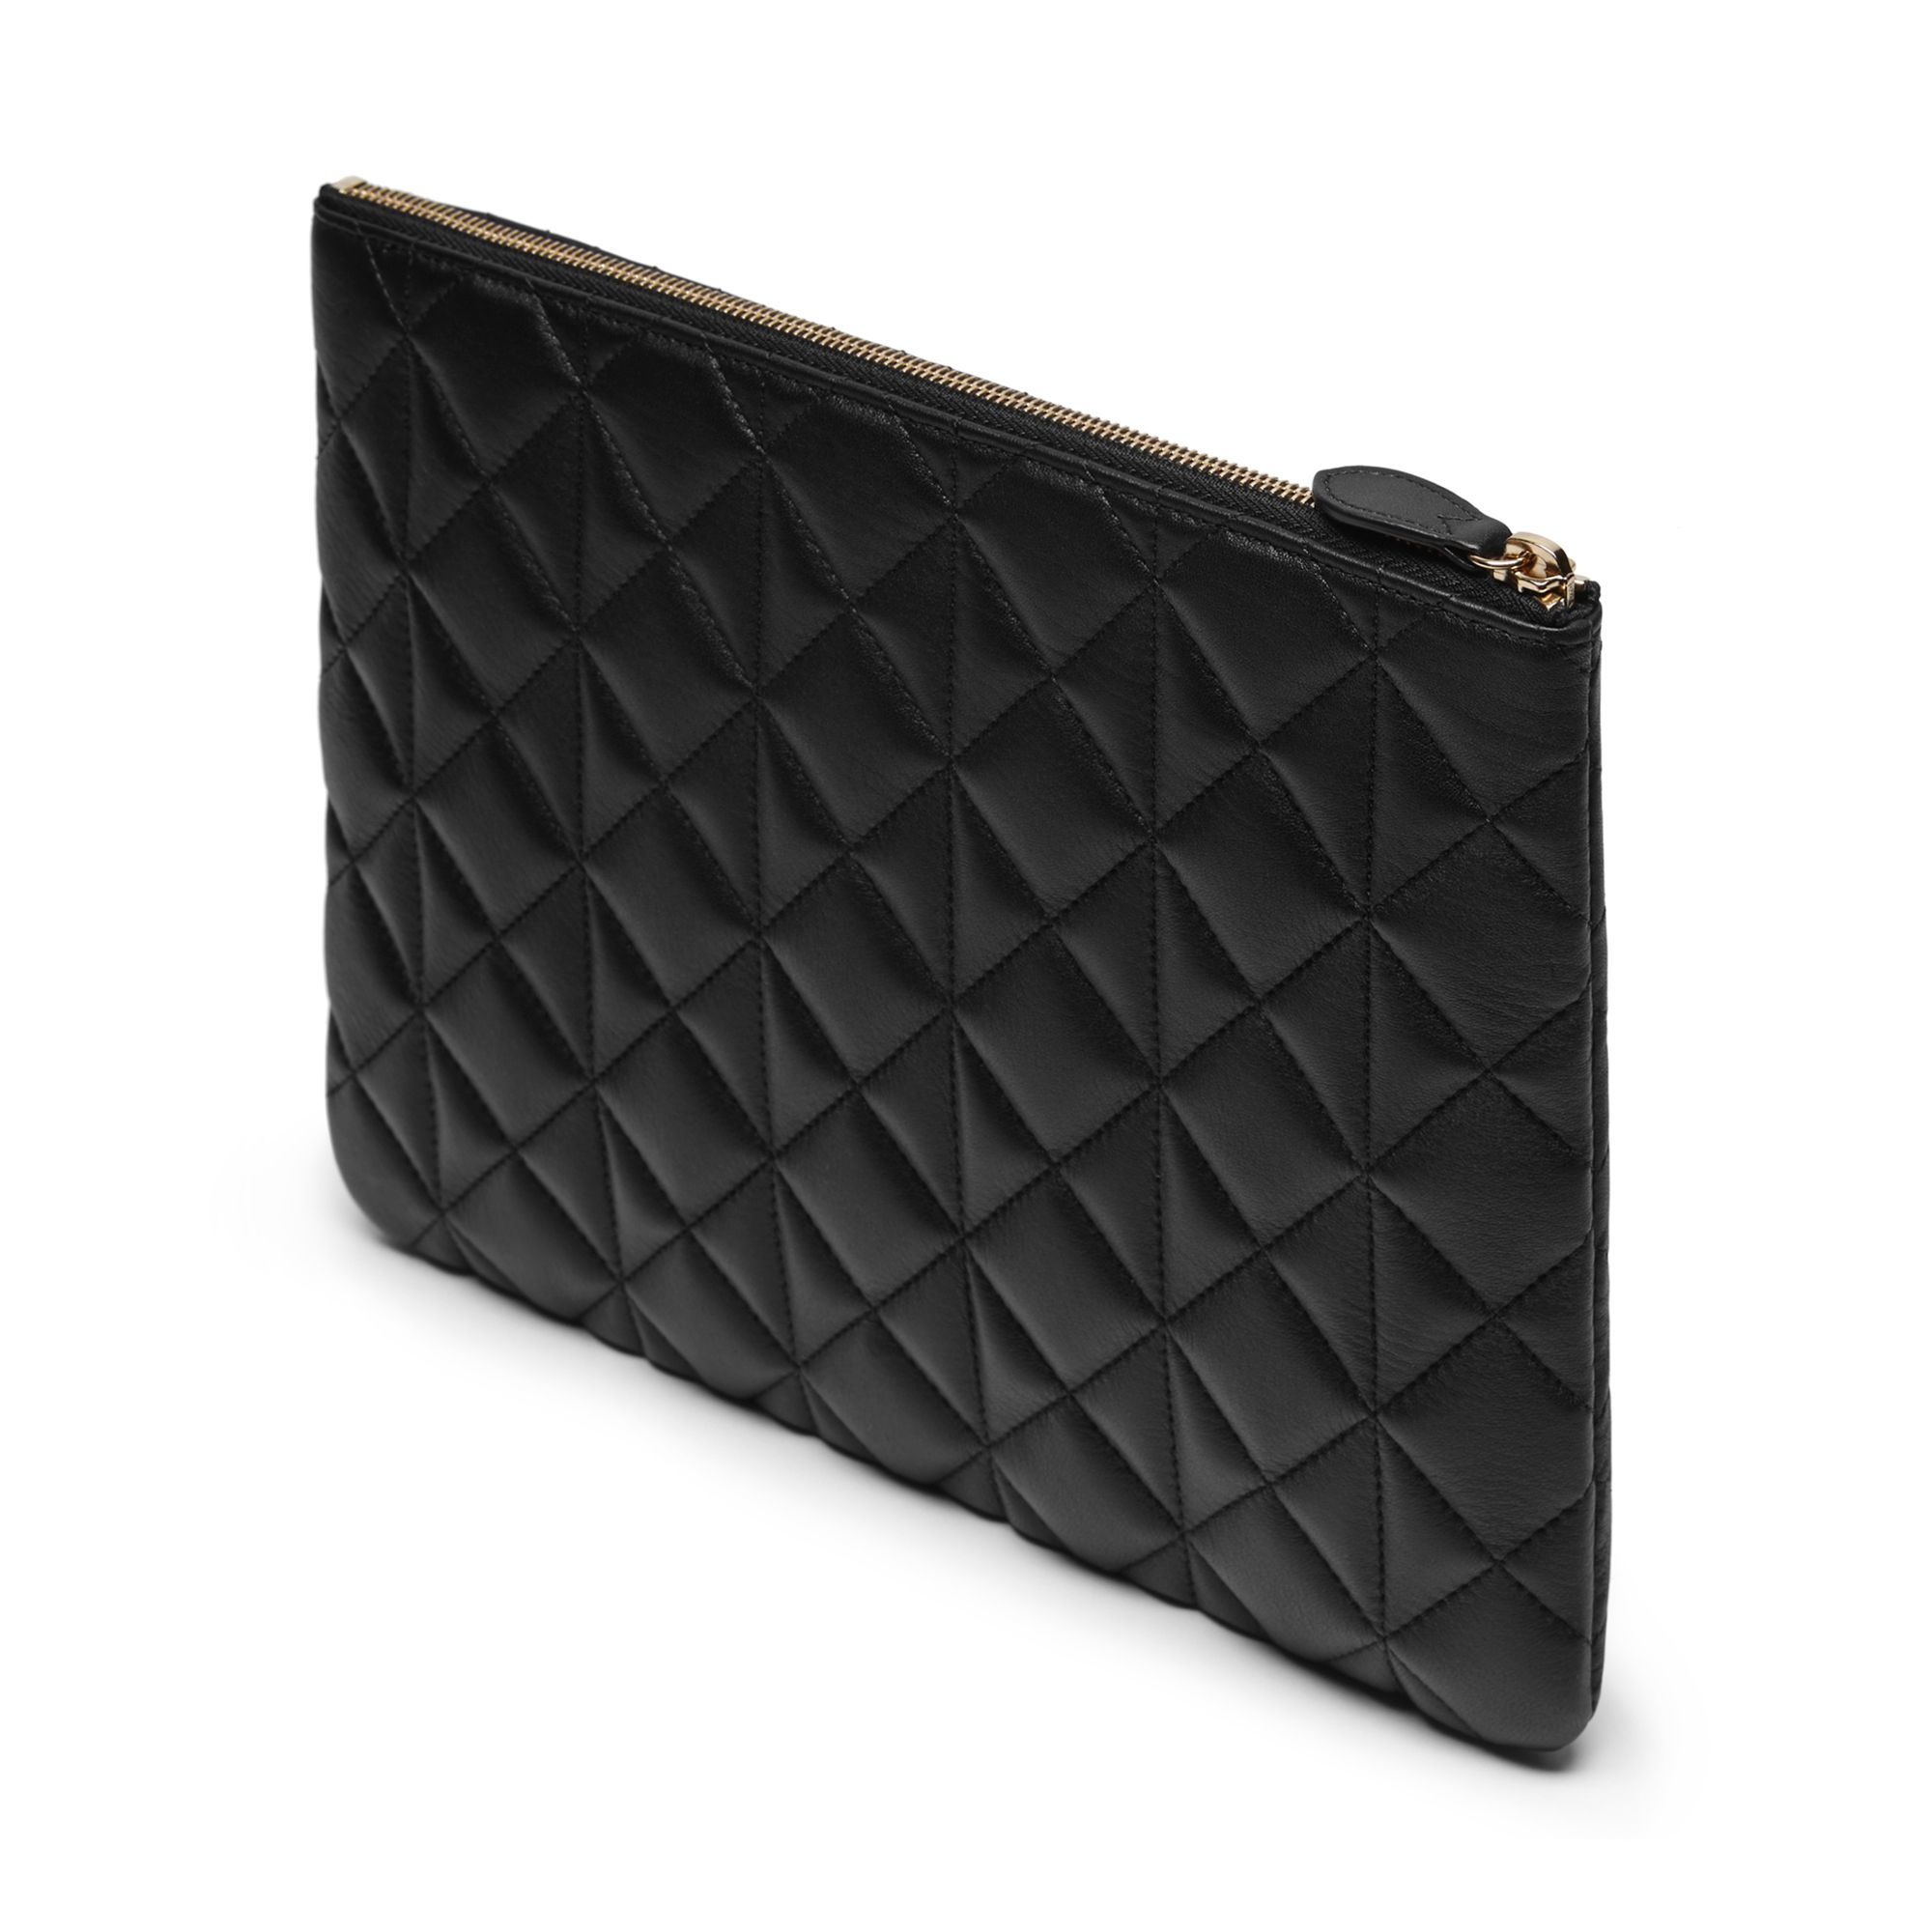 59b5558543 Mulberry Cara Delevingne Large Pouch in Black - Lyst